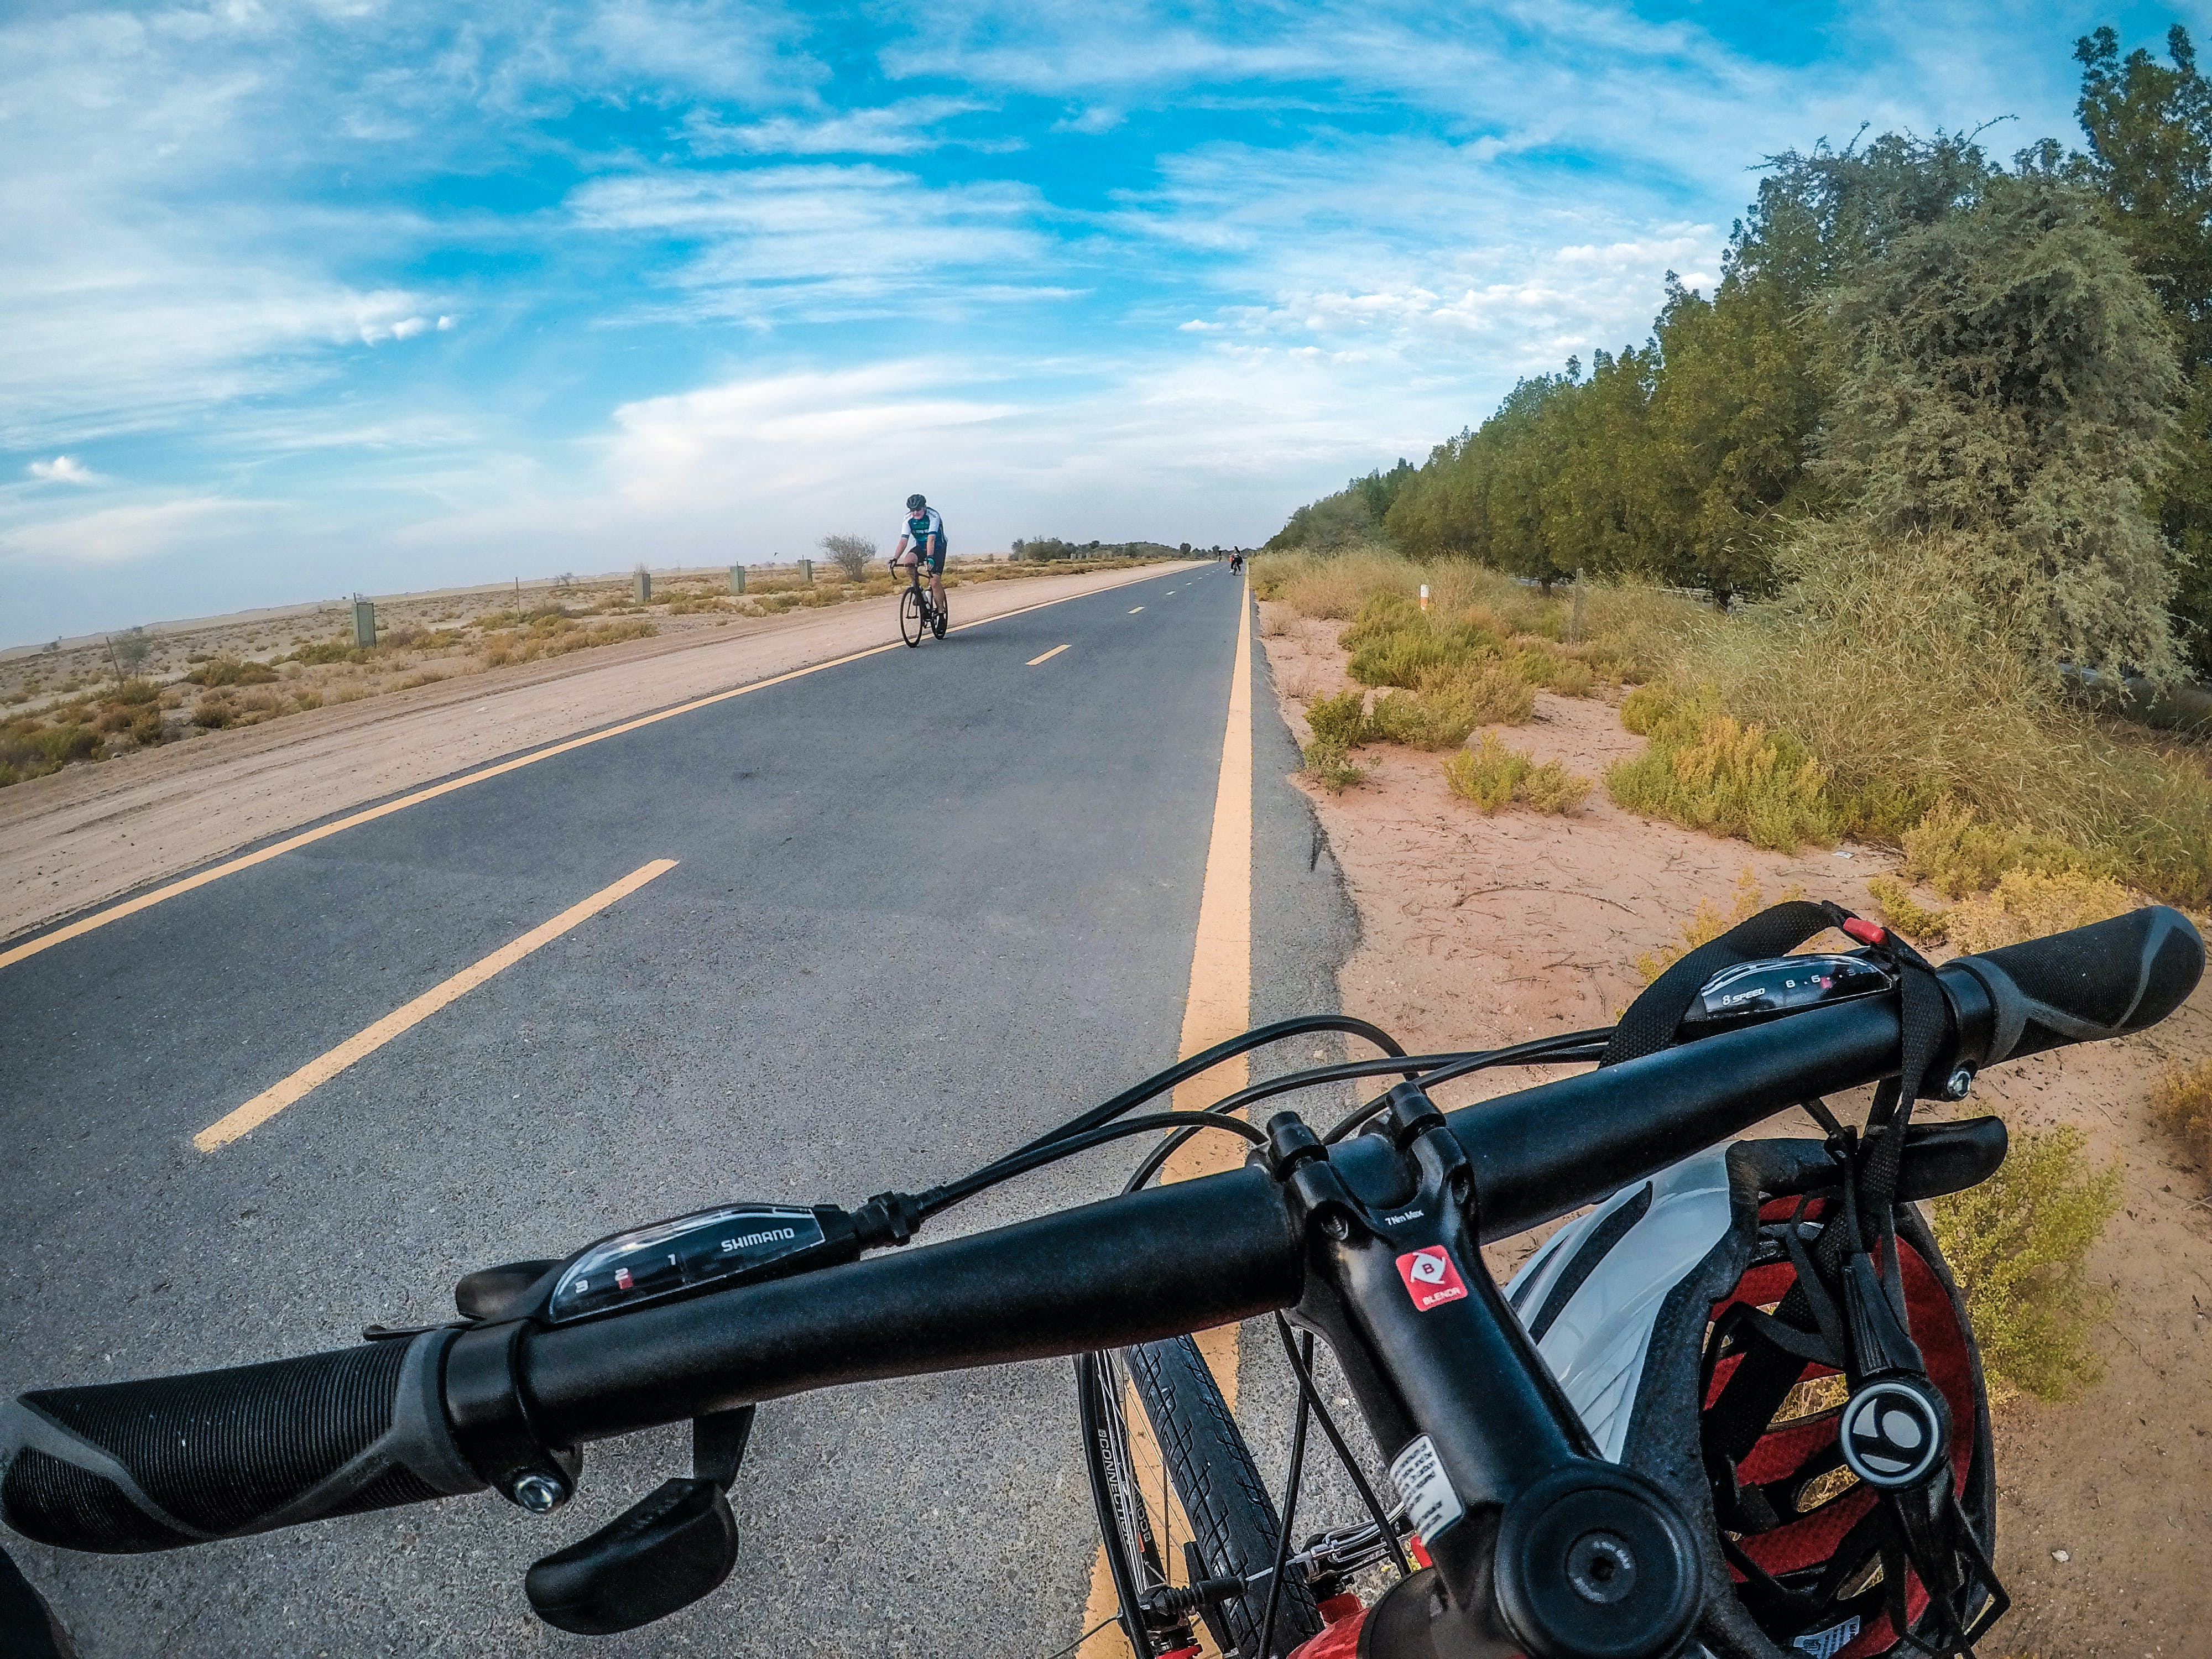 Free stock photo of bicycle, dirt road, gopro